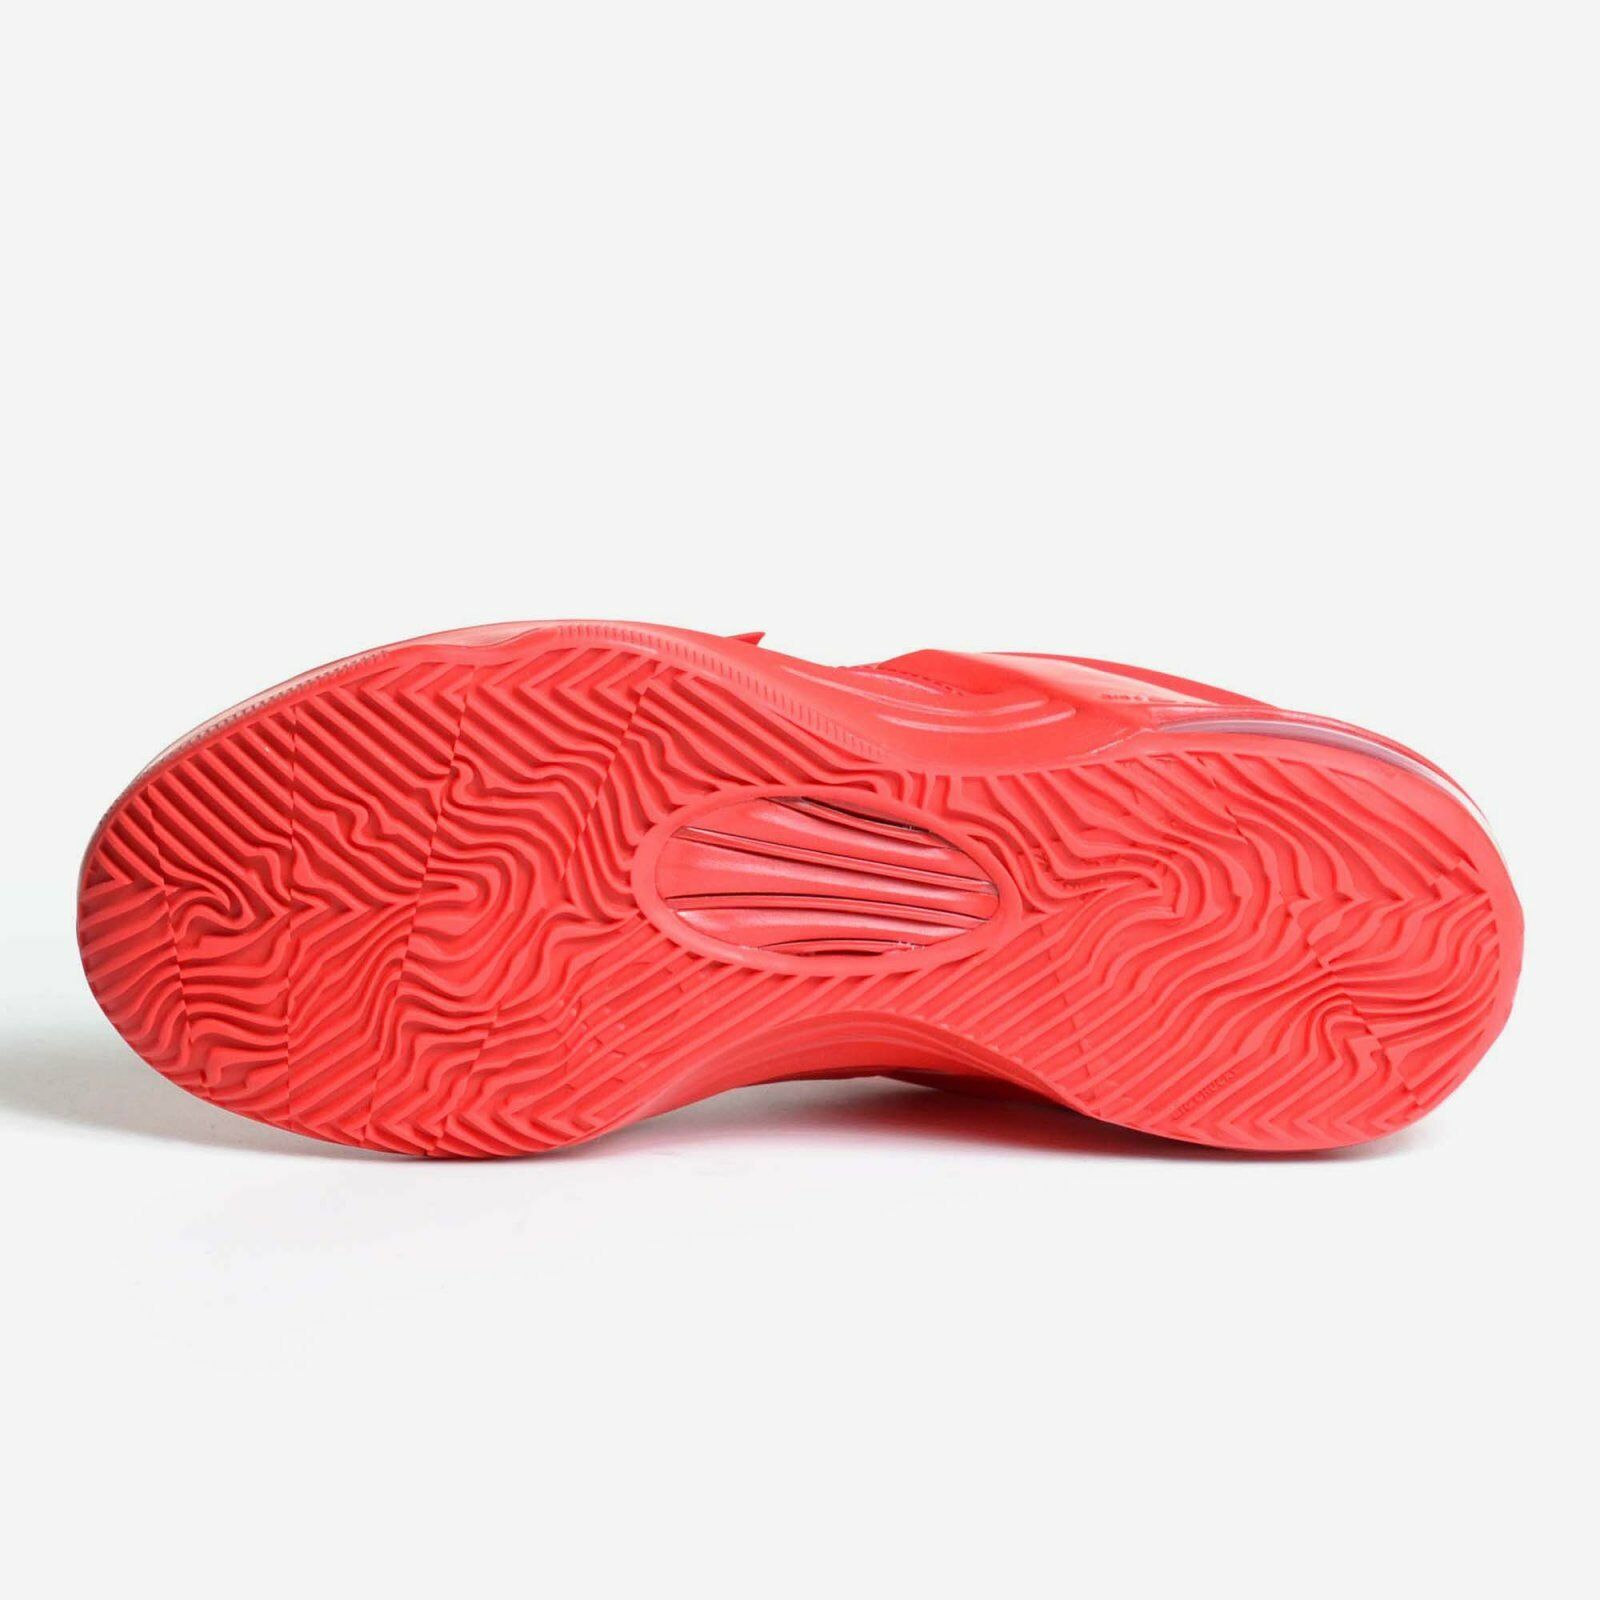 Nike Kd 7 EP Global Game 2014 Action XDR Red Silver XDR Action VII Basketball DS 653997-660 d3c24b